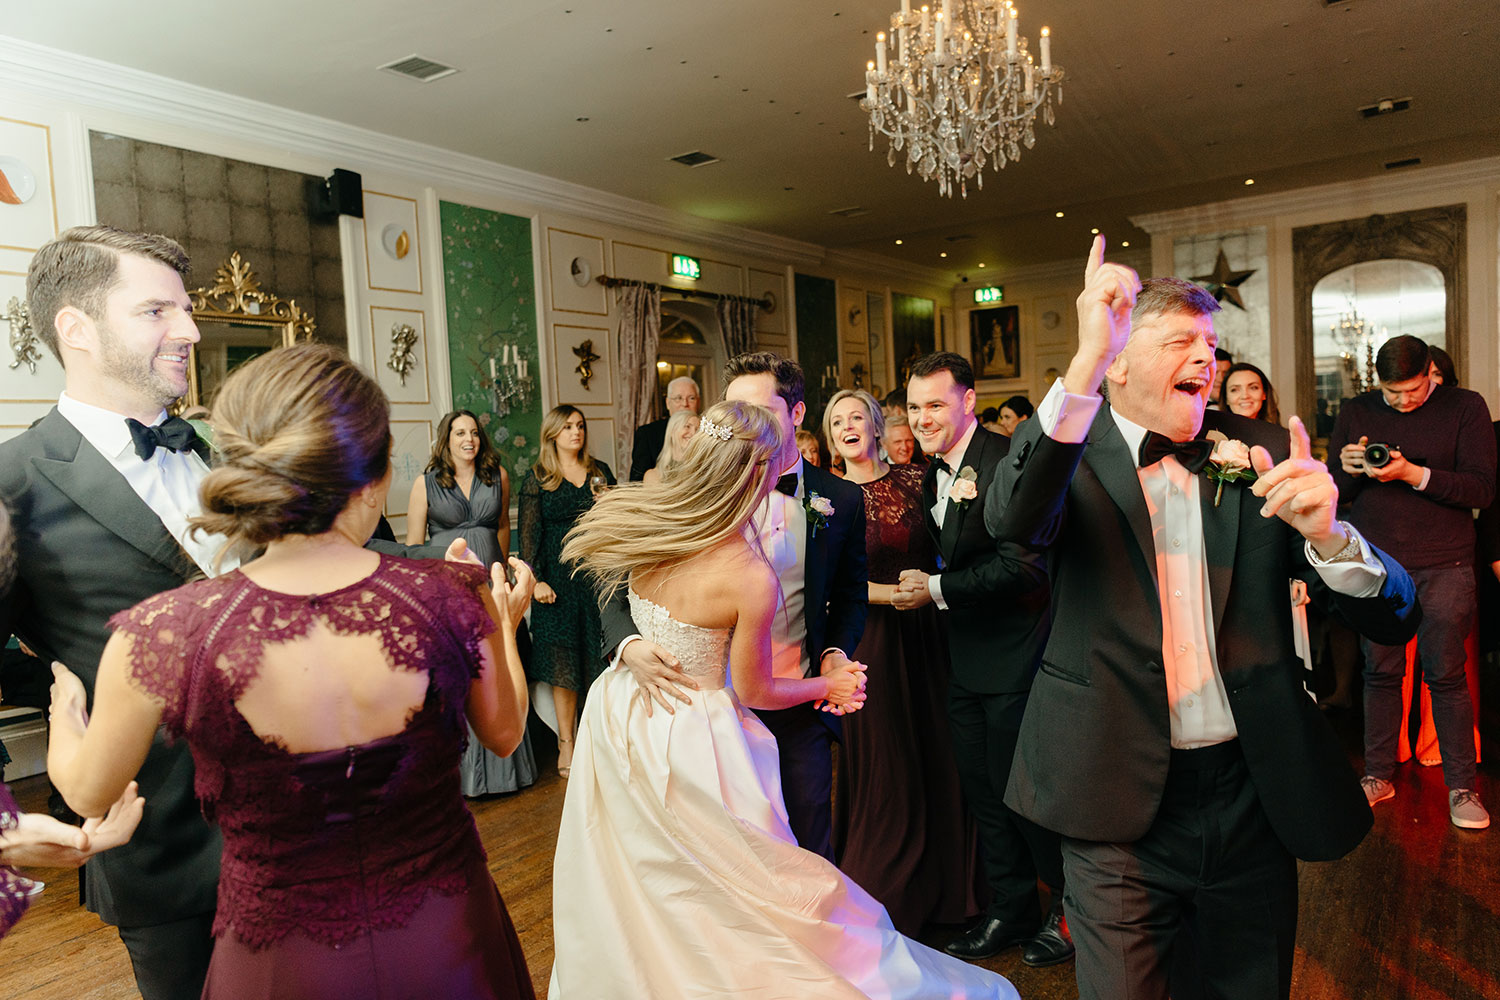 castle-durrow-wedding-photographer-0151_0151.jpg